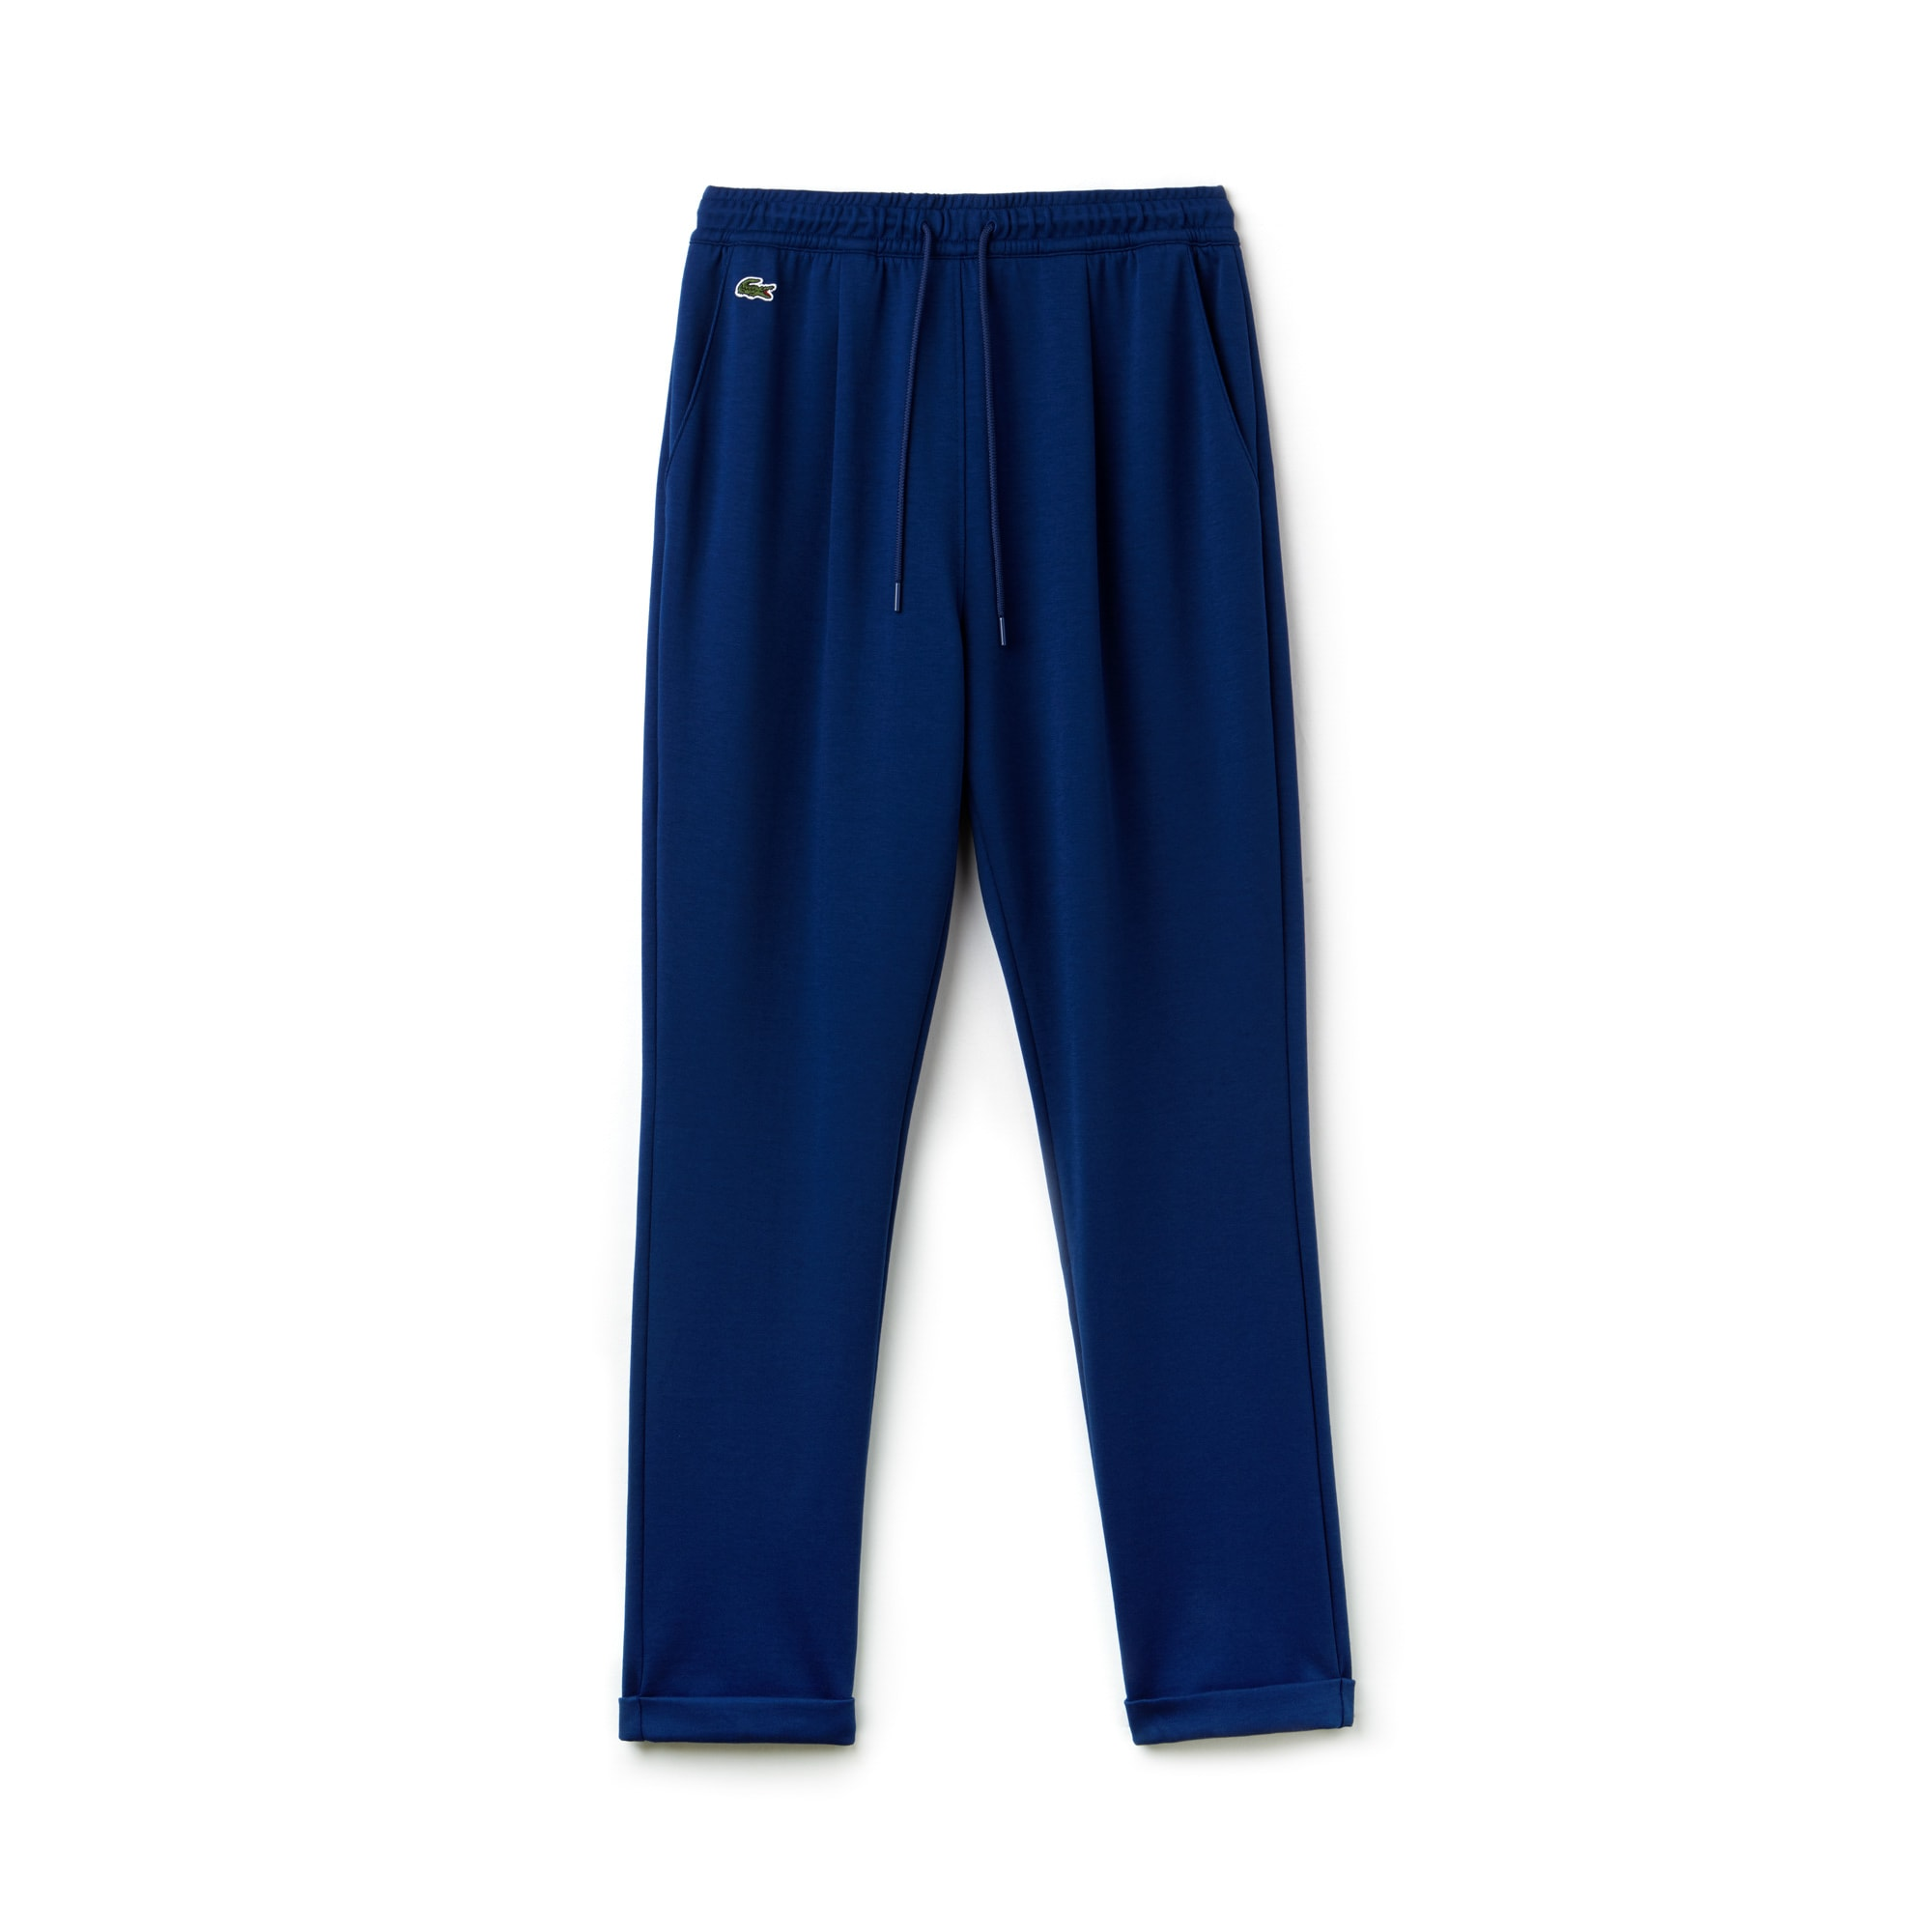 Women's SPORT Pleated Cotton Tennis Trackpants